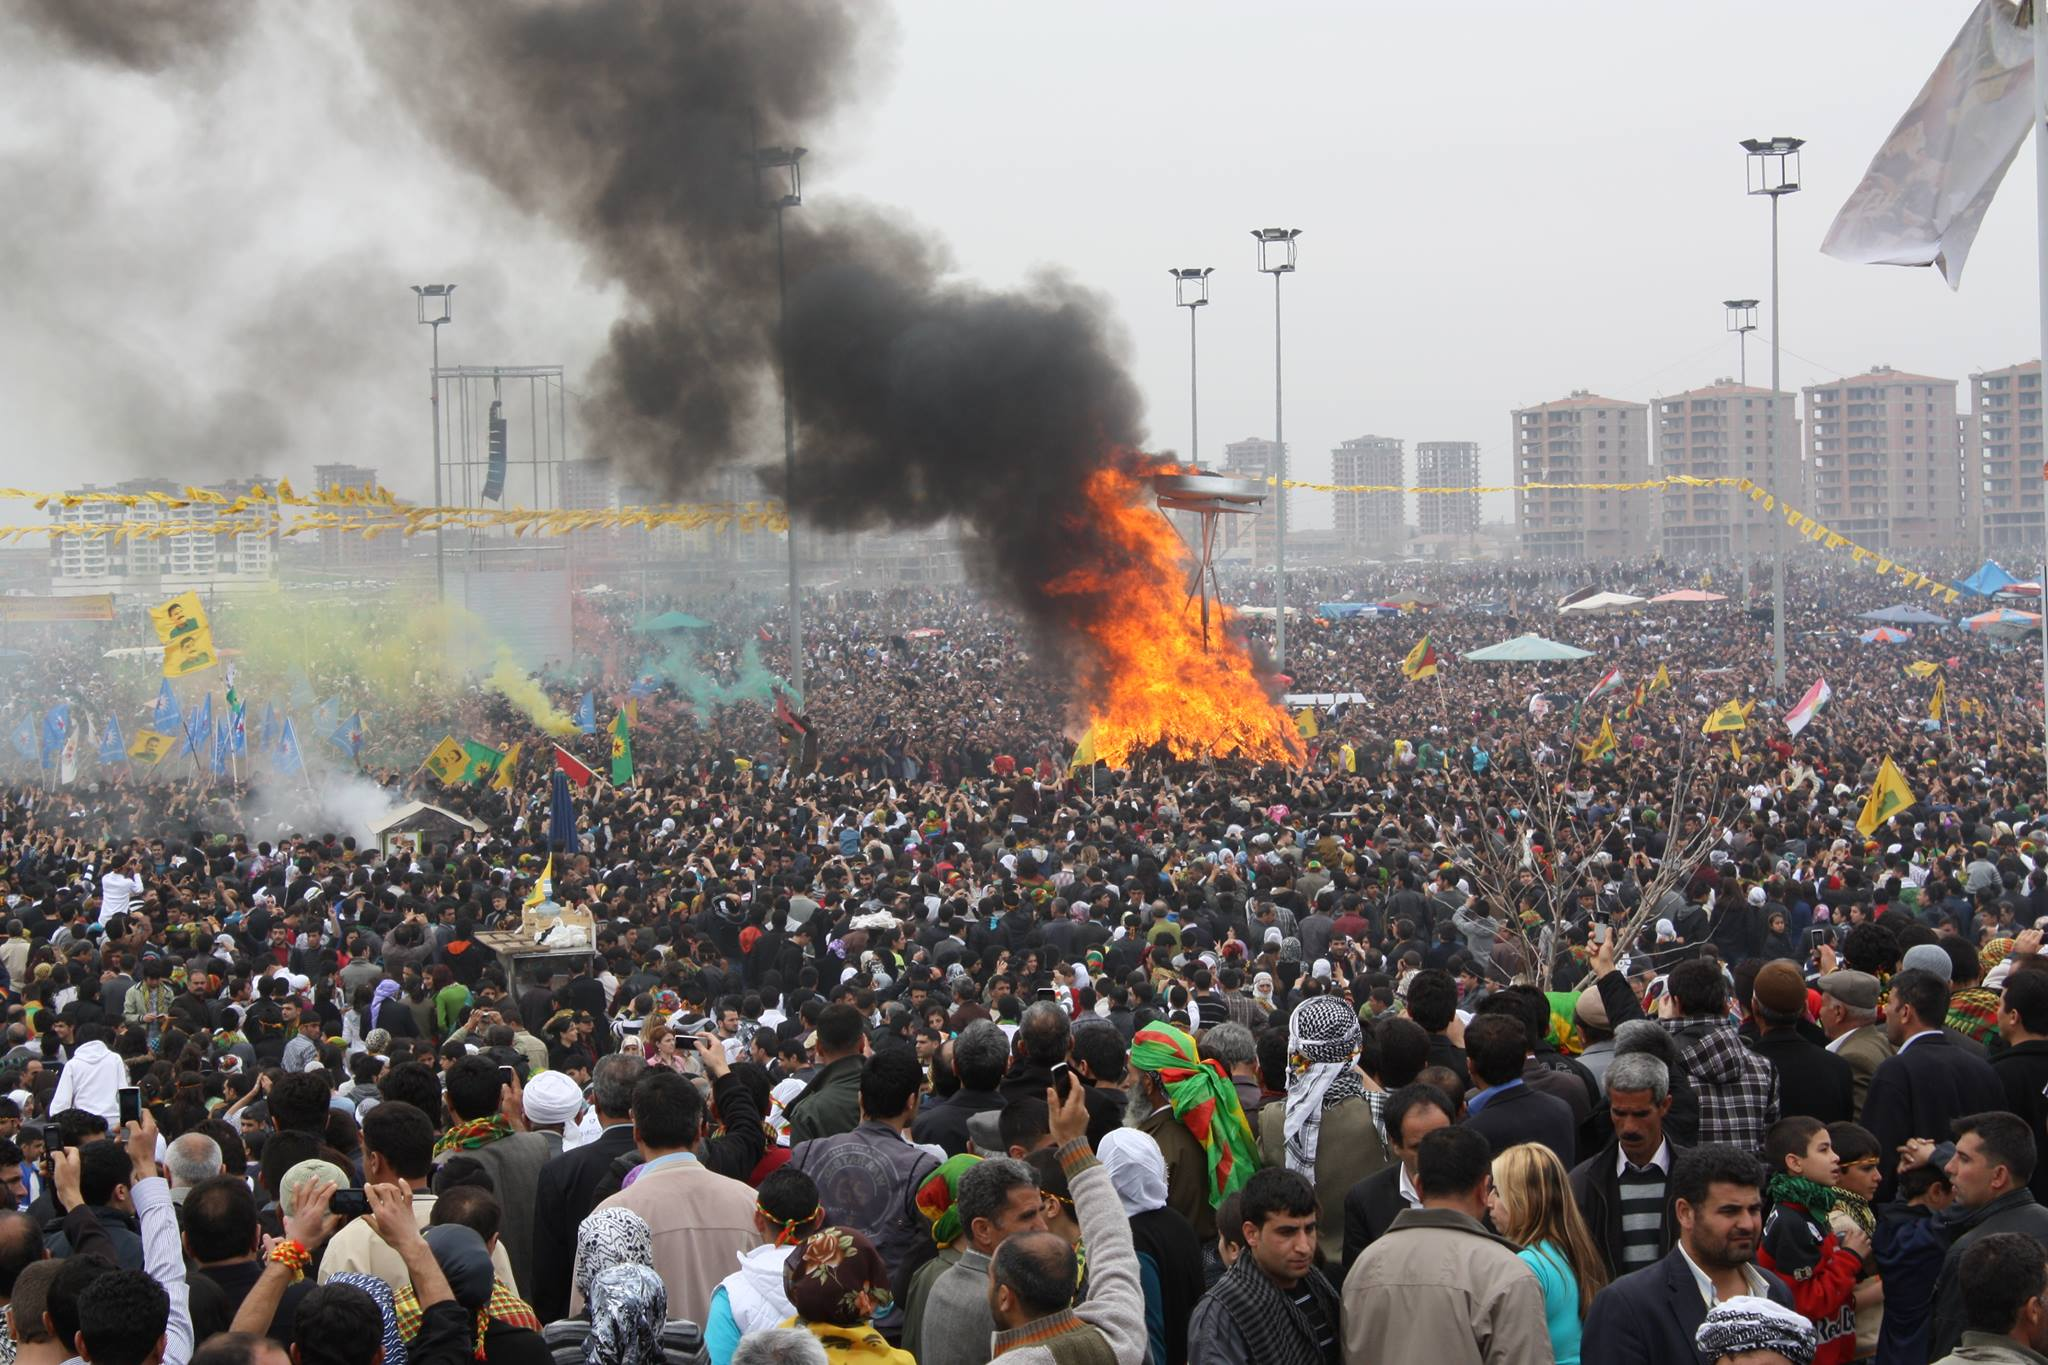 Newroz in Turkey: What symbol for tomorrow?